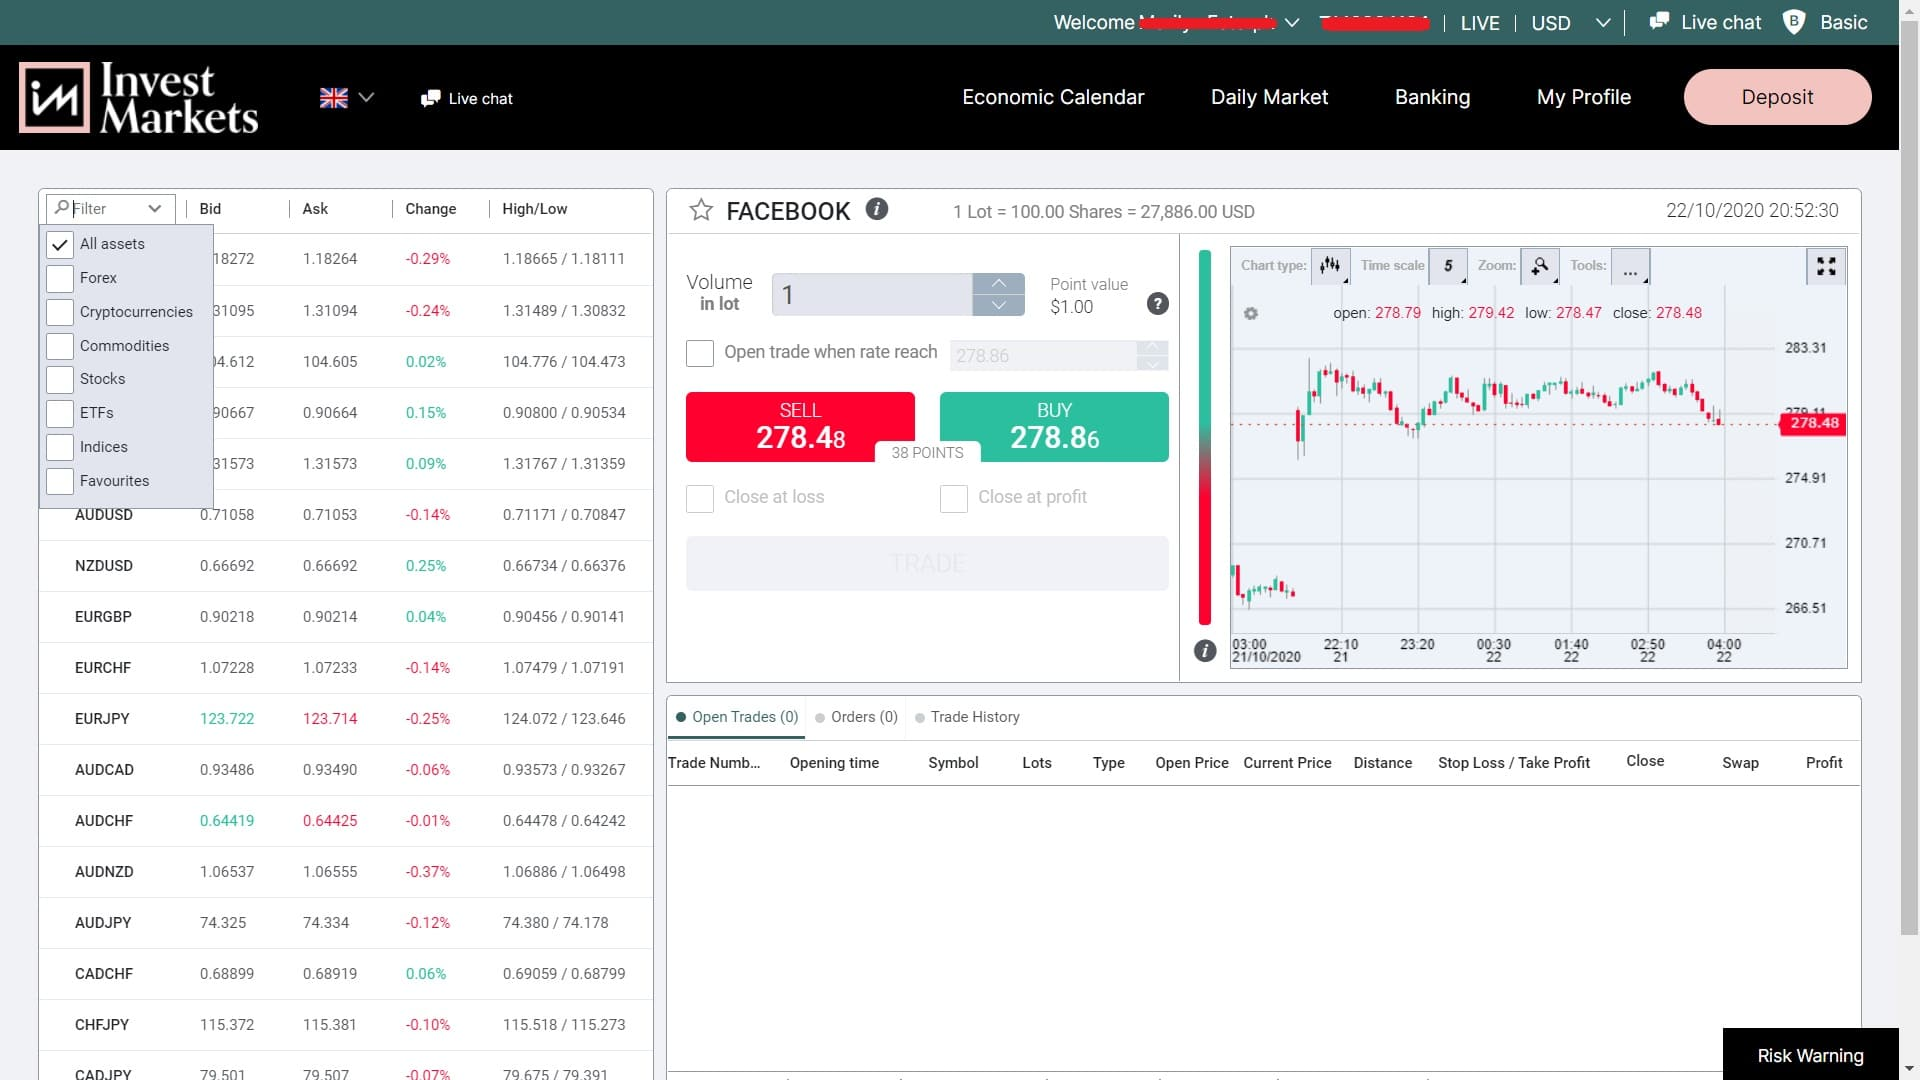 Trading Facebook CFDs with InvestMarkets